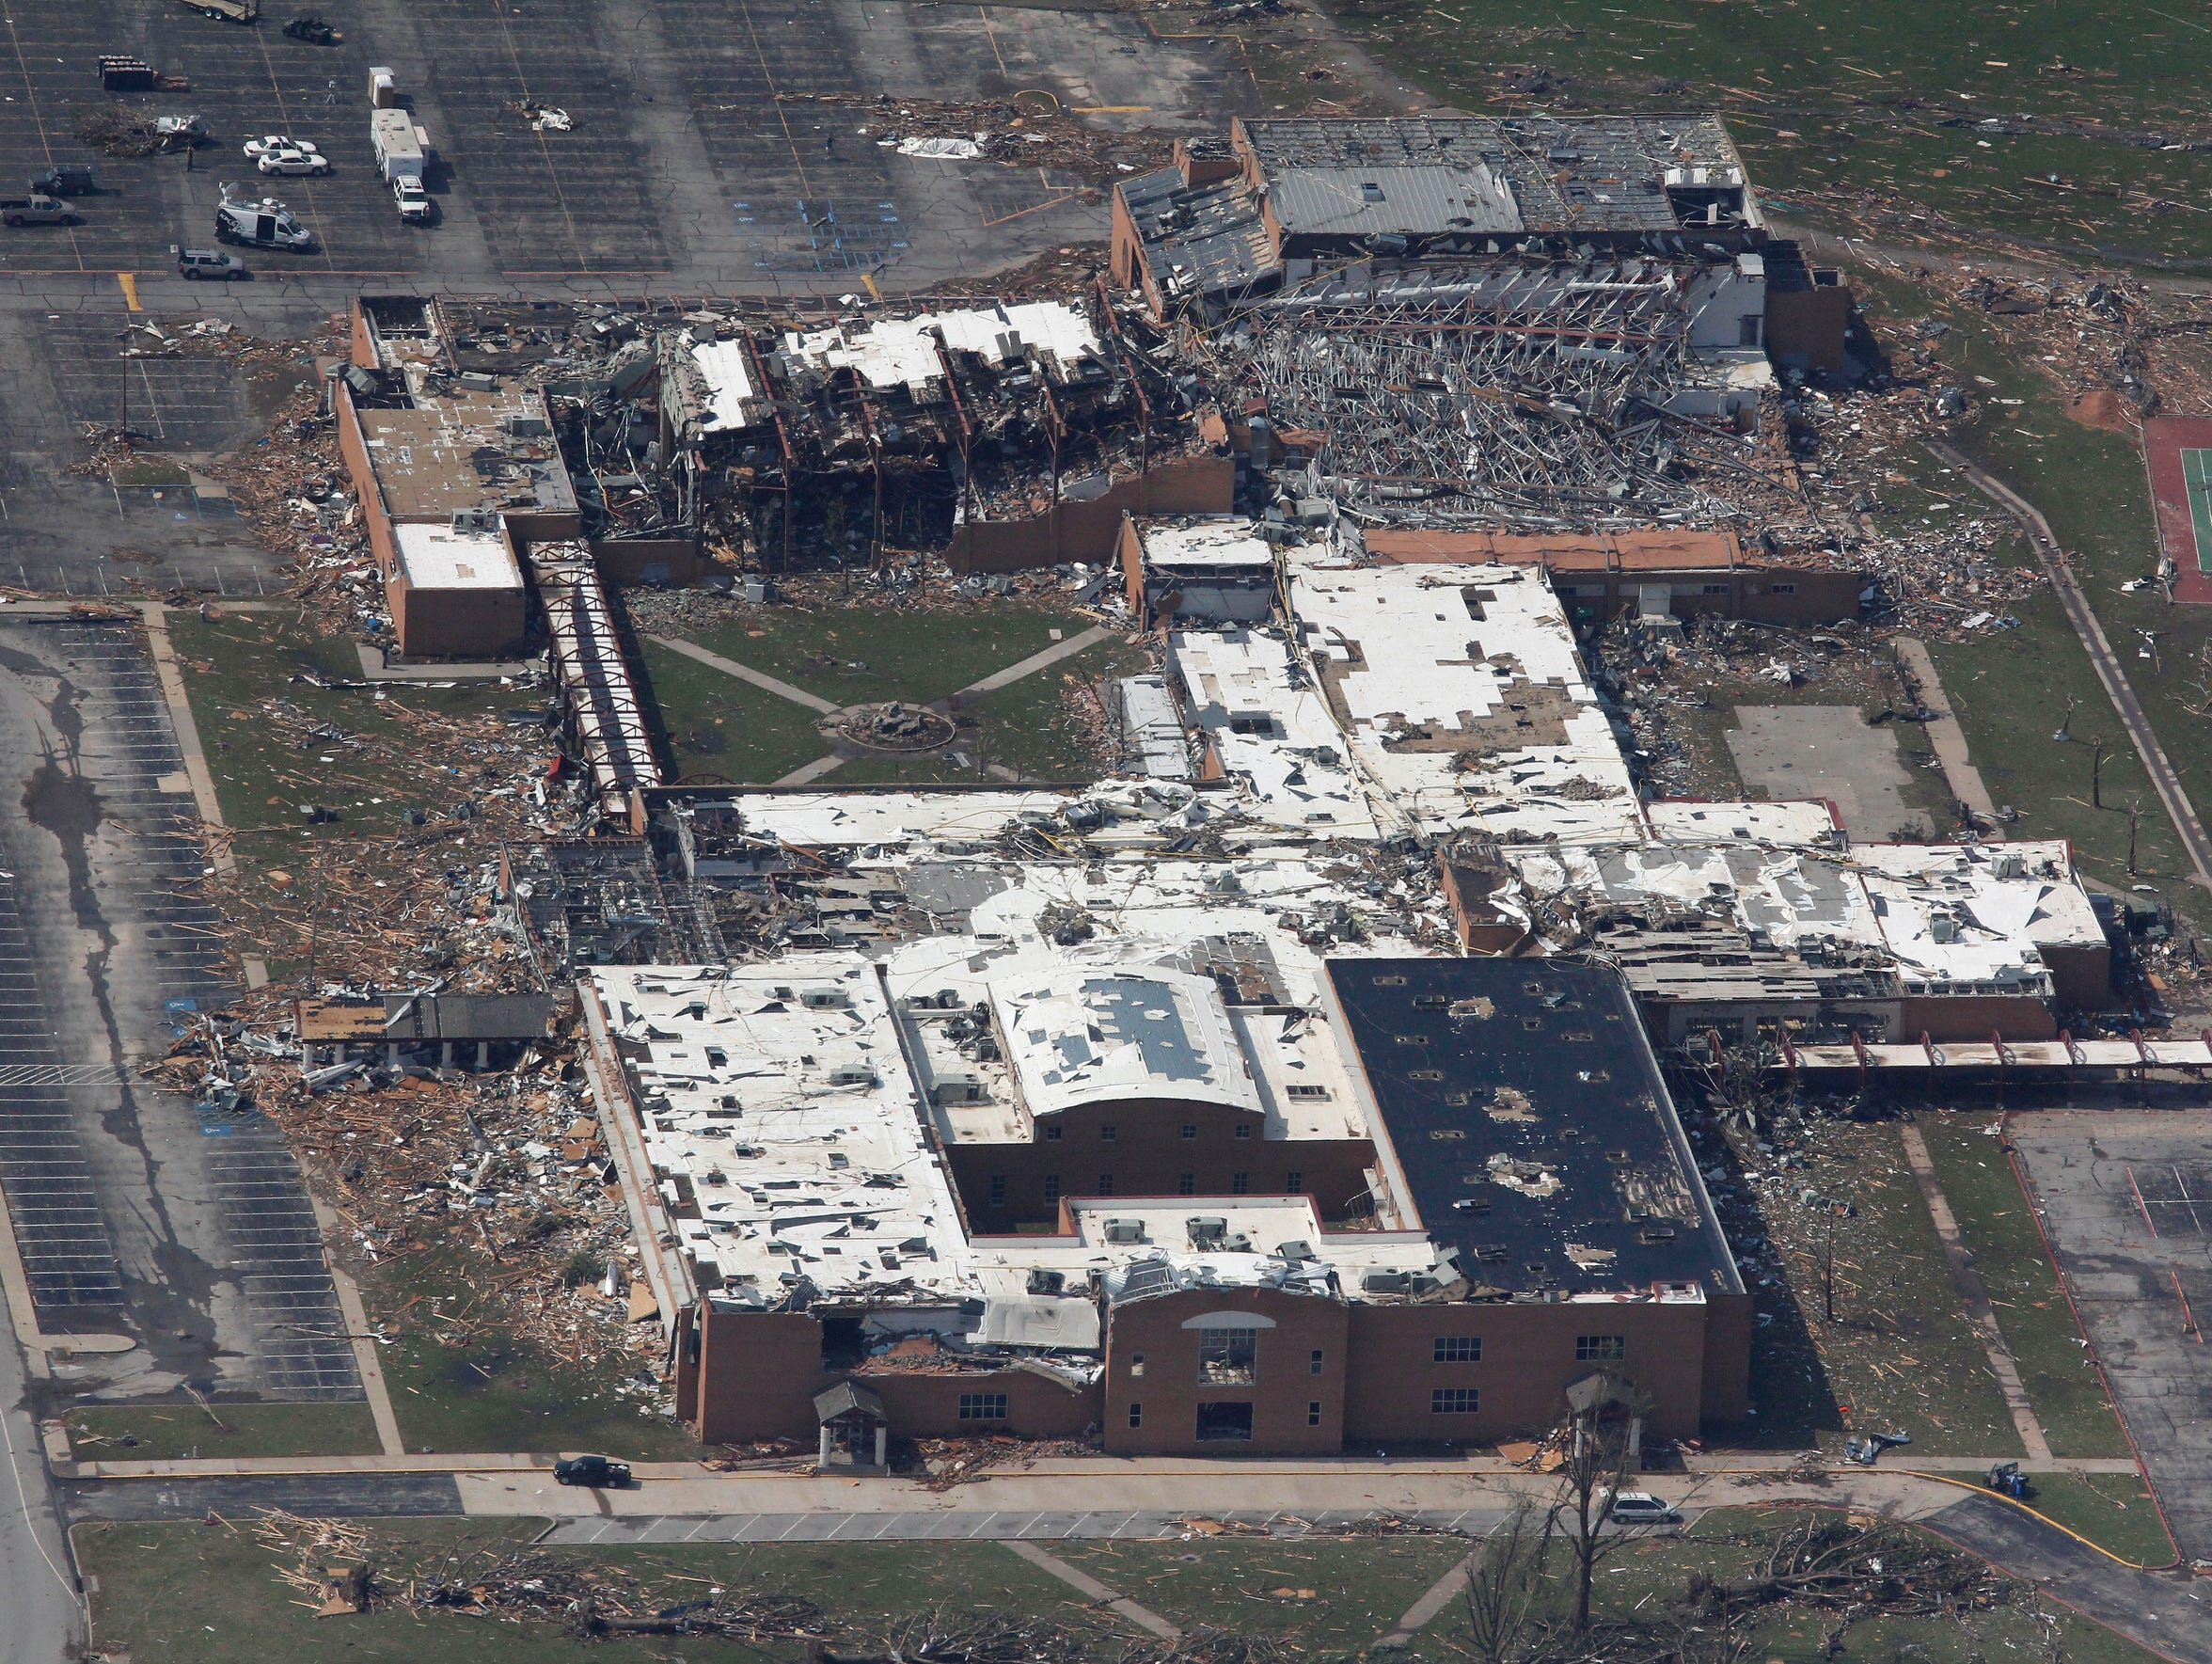 An aerial view of tornado damage at Joplin High School